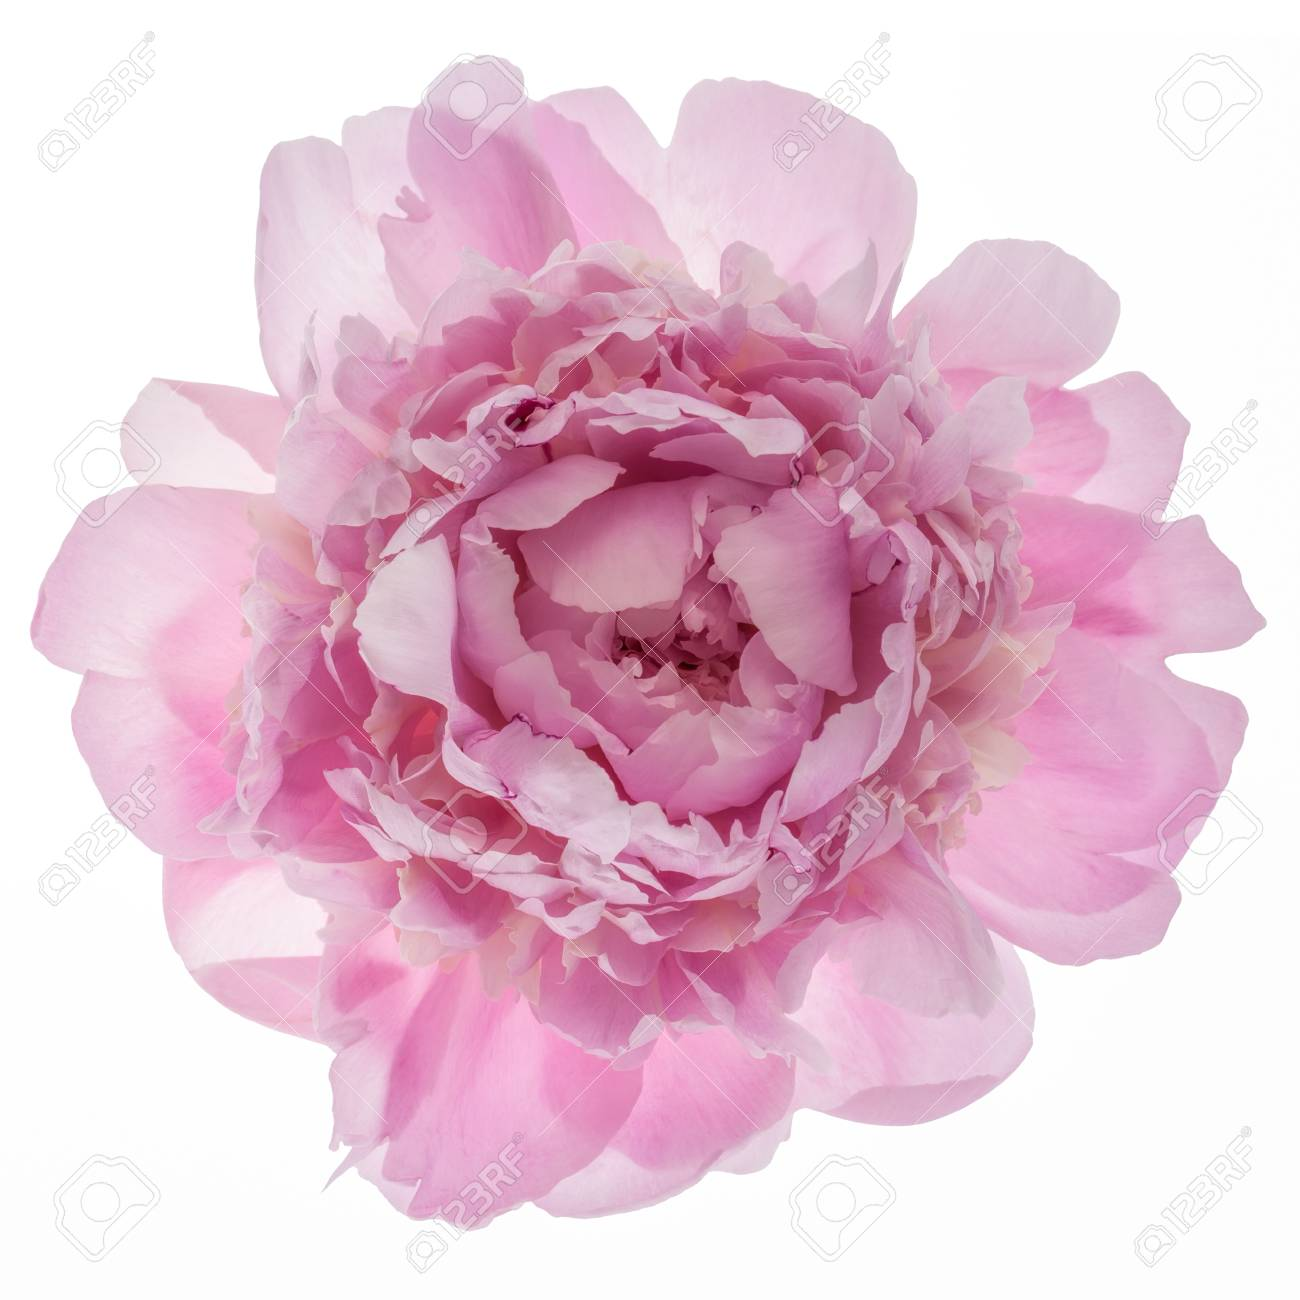 Pink Peony Flower Isolated On White Background Top View Stock